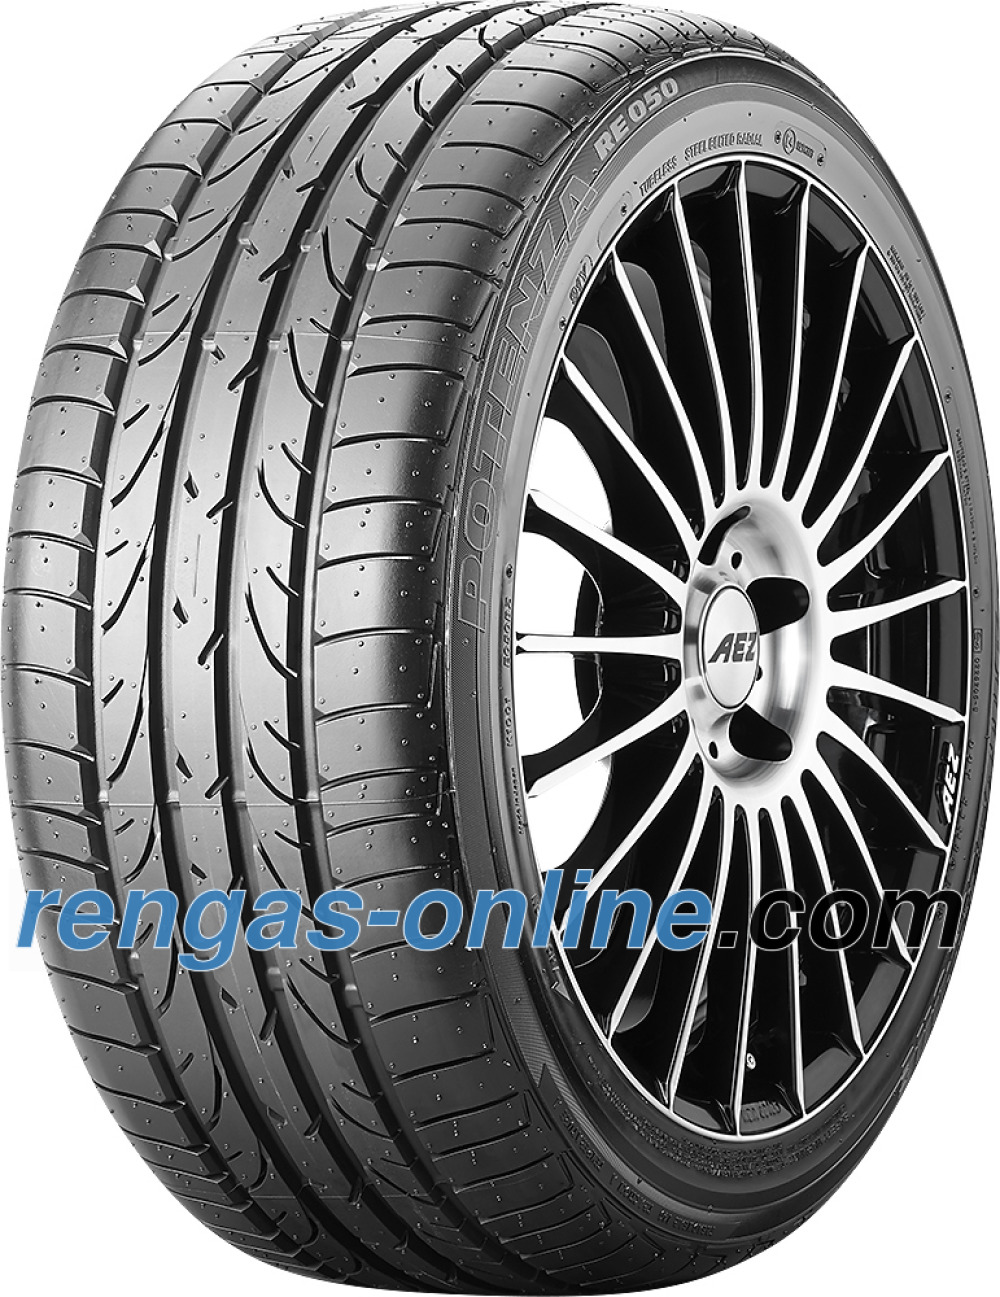 bridgestone-potenza-re-050-21545-r17-91v-xl